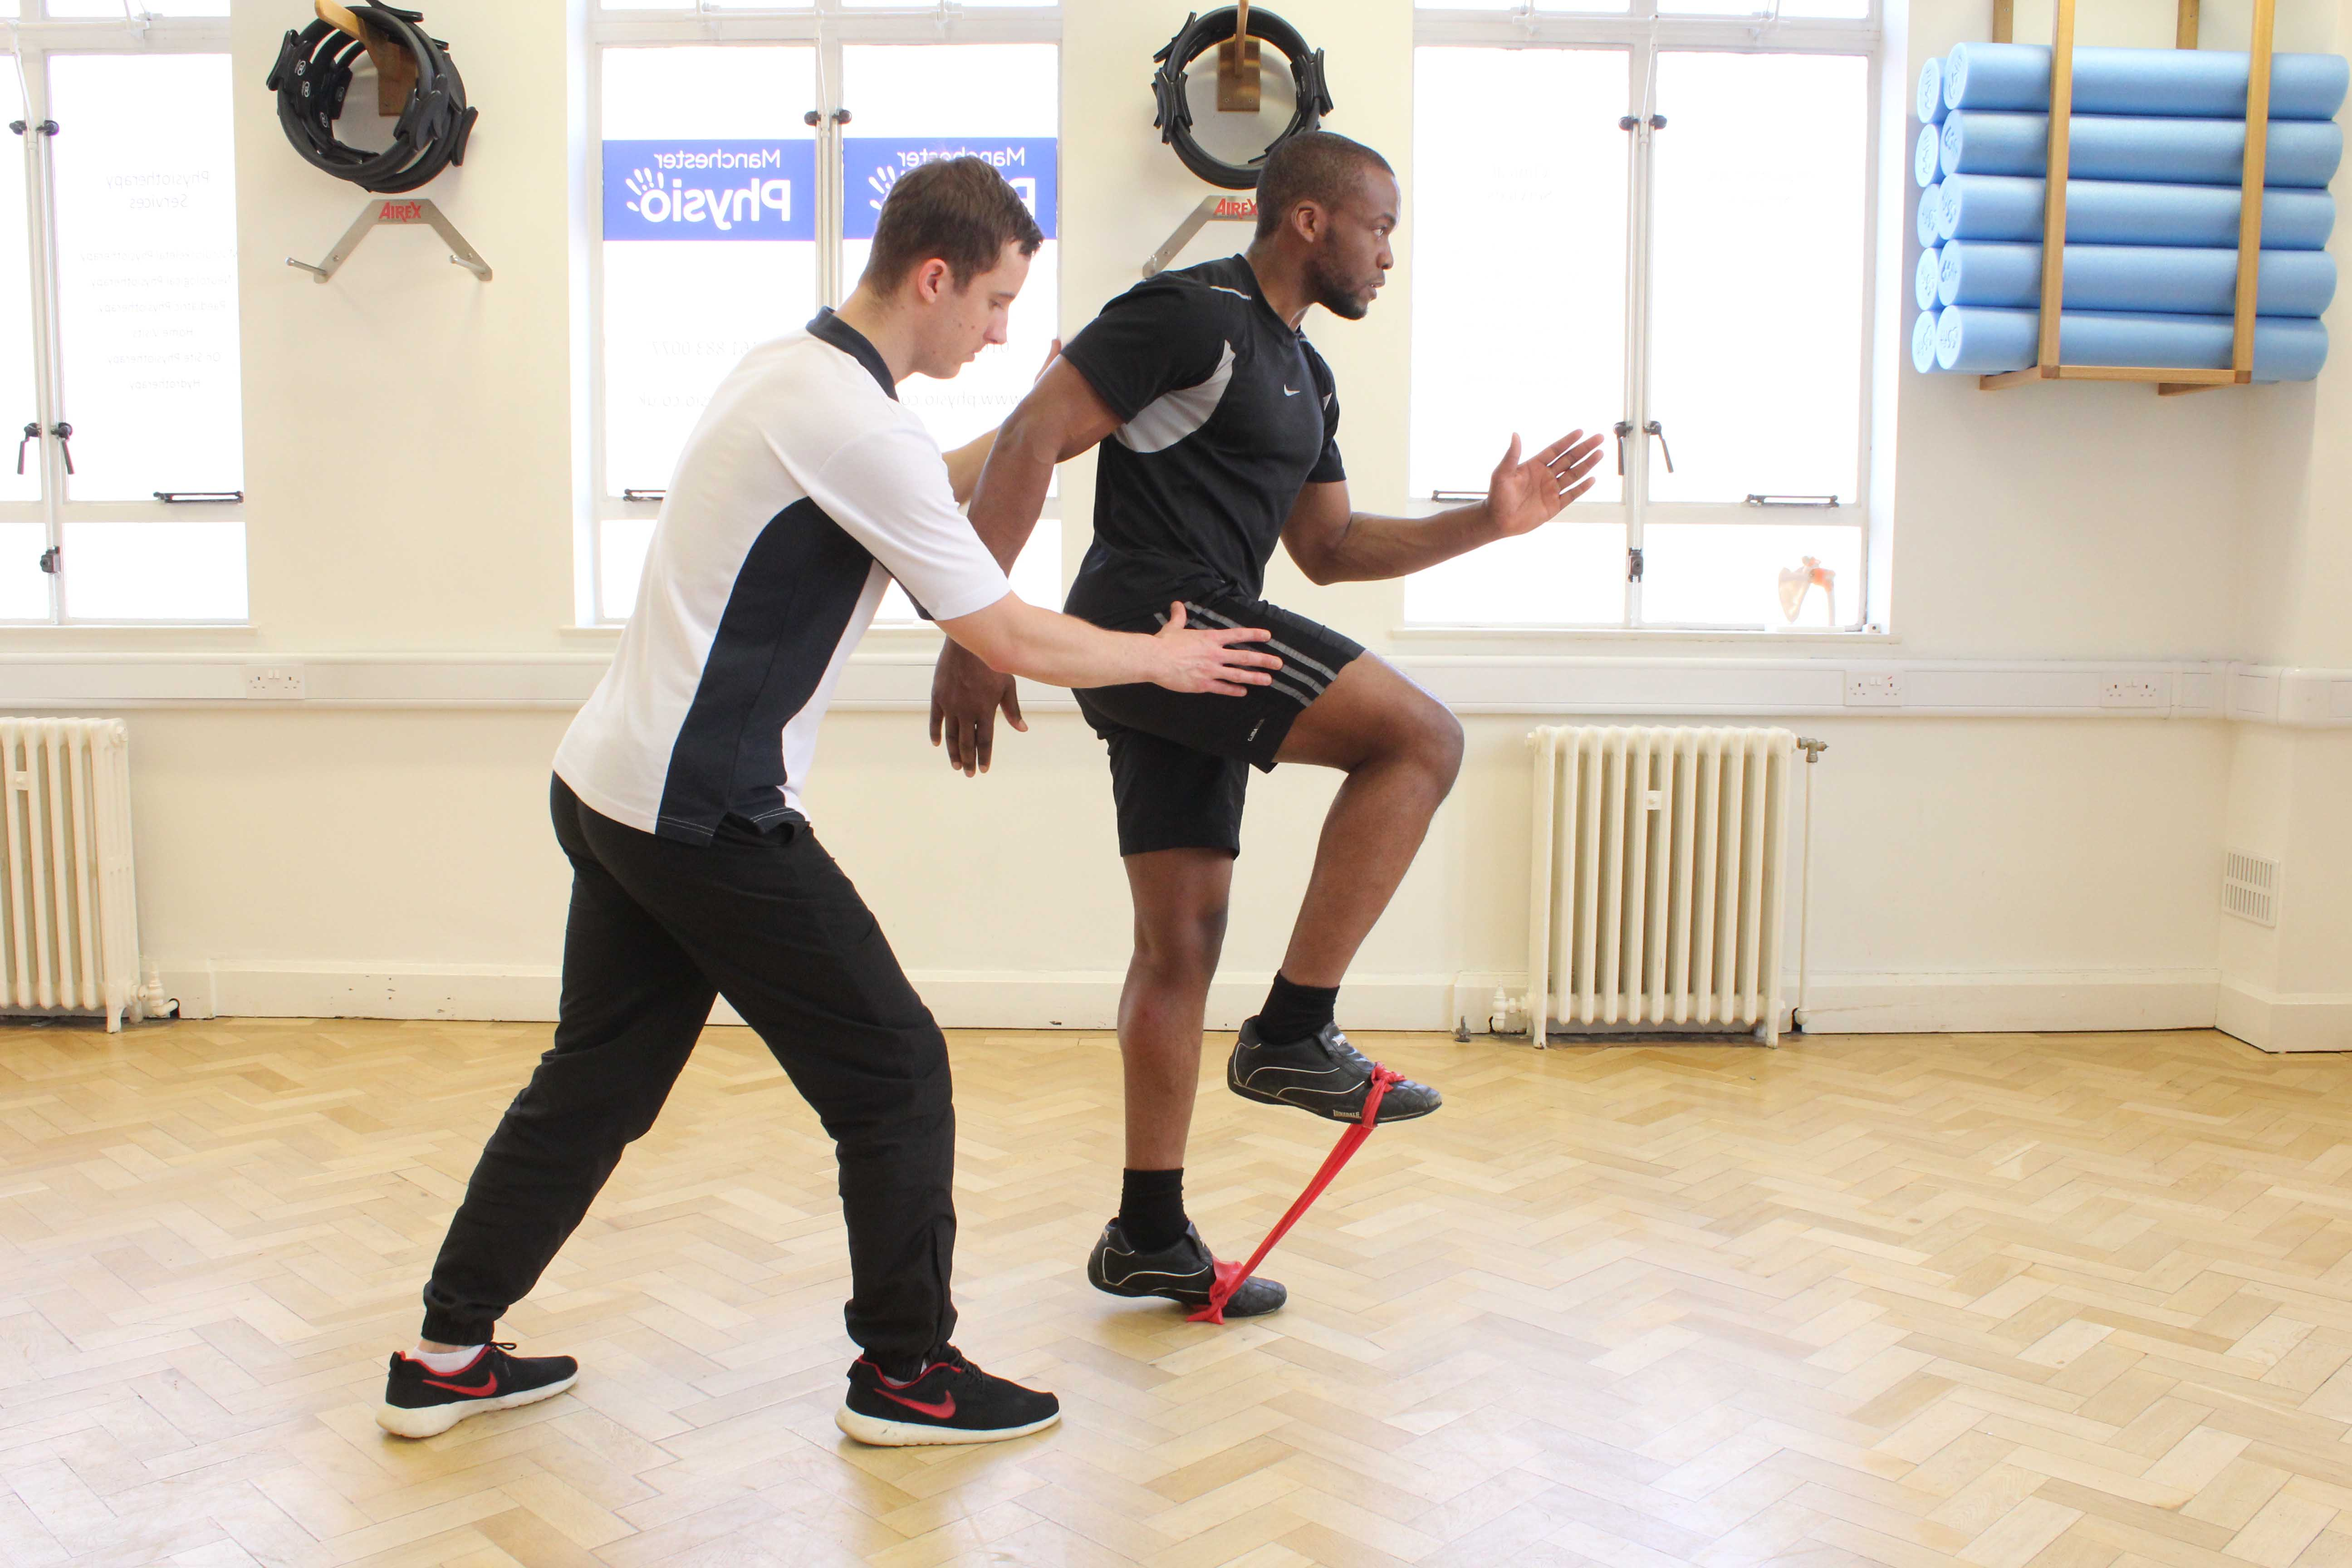 Sport rehabilitation mobility exercises using a resistance band under physiotherapy supervision